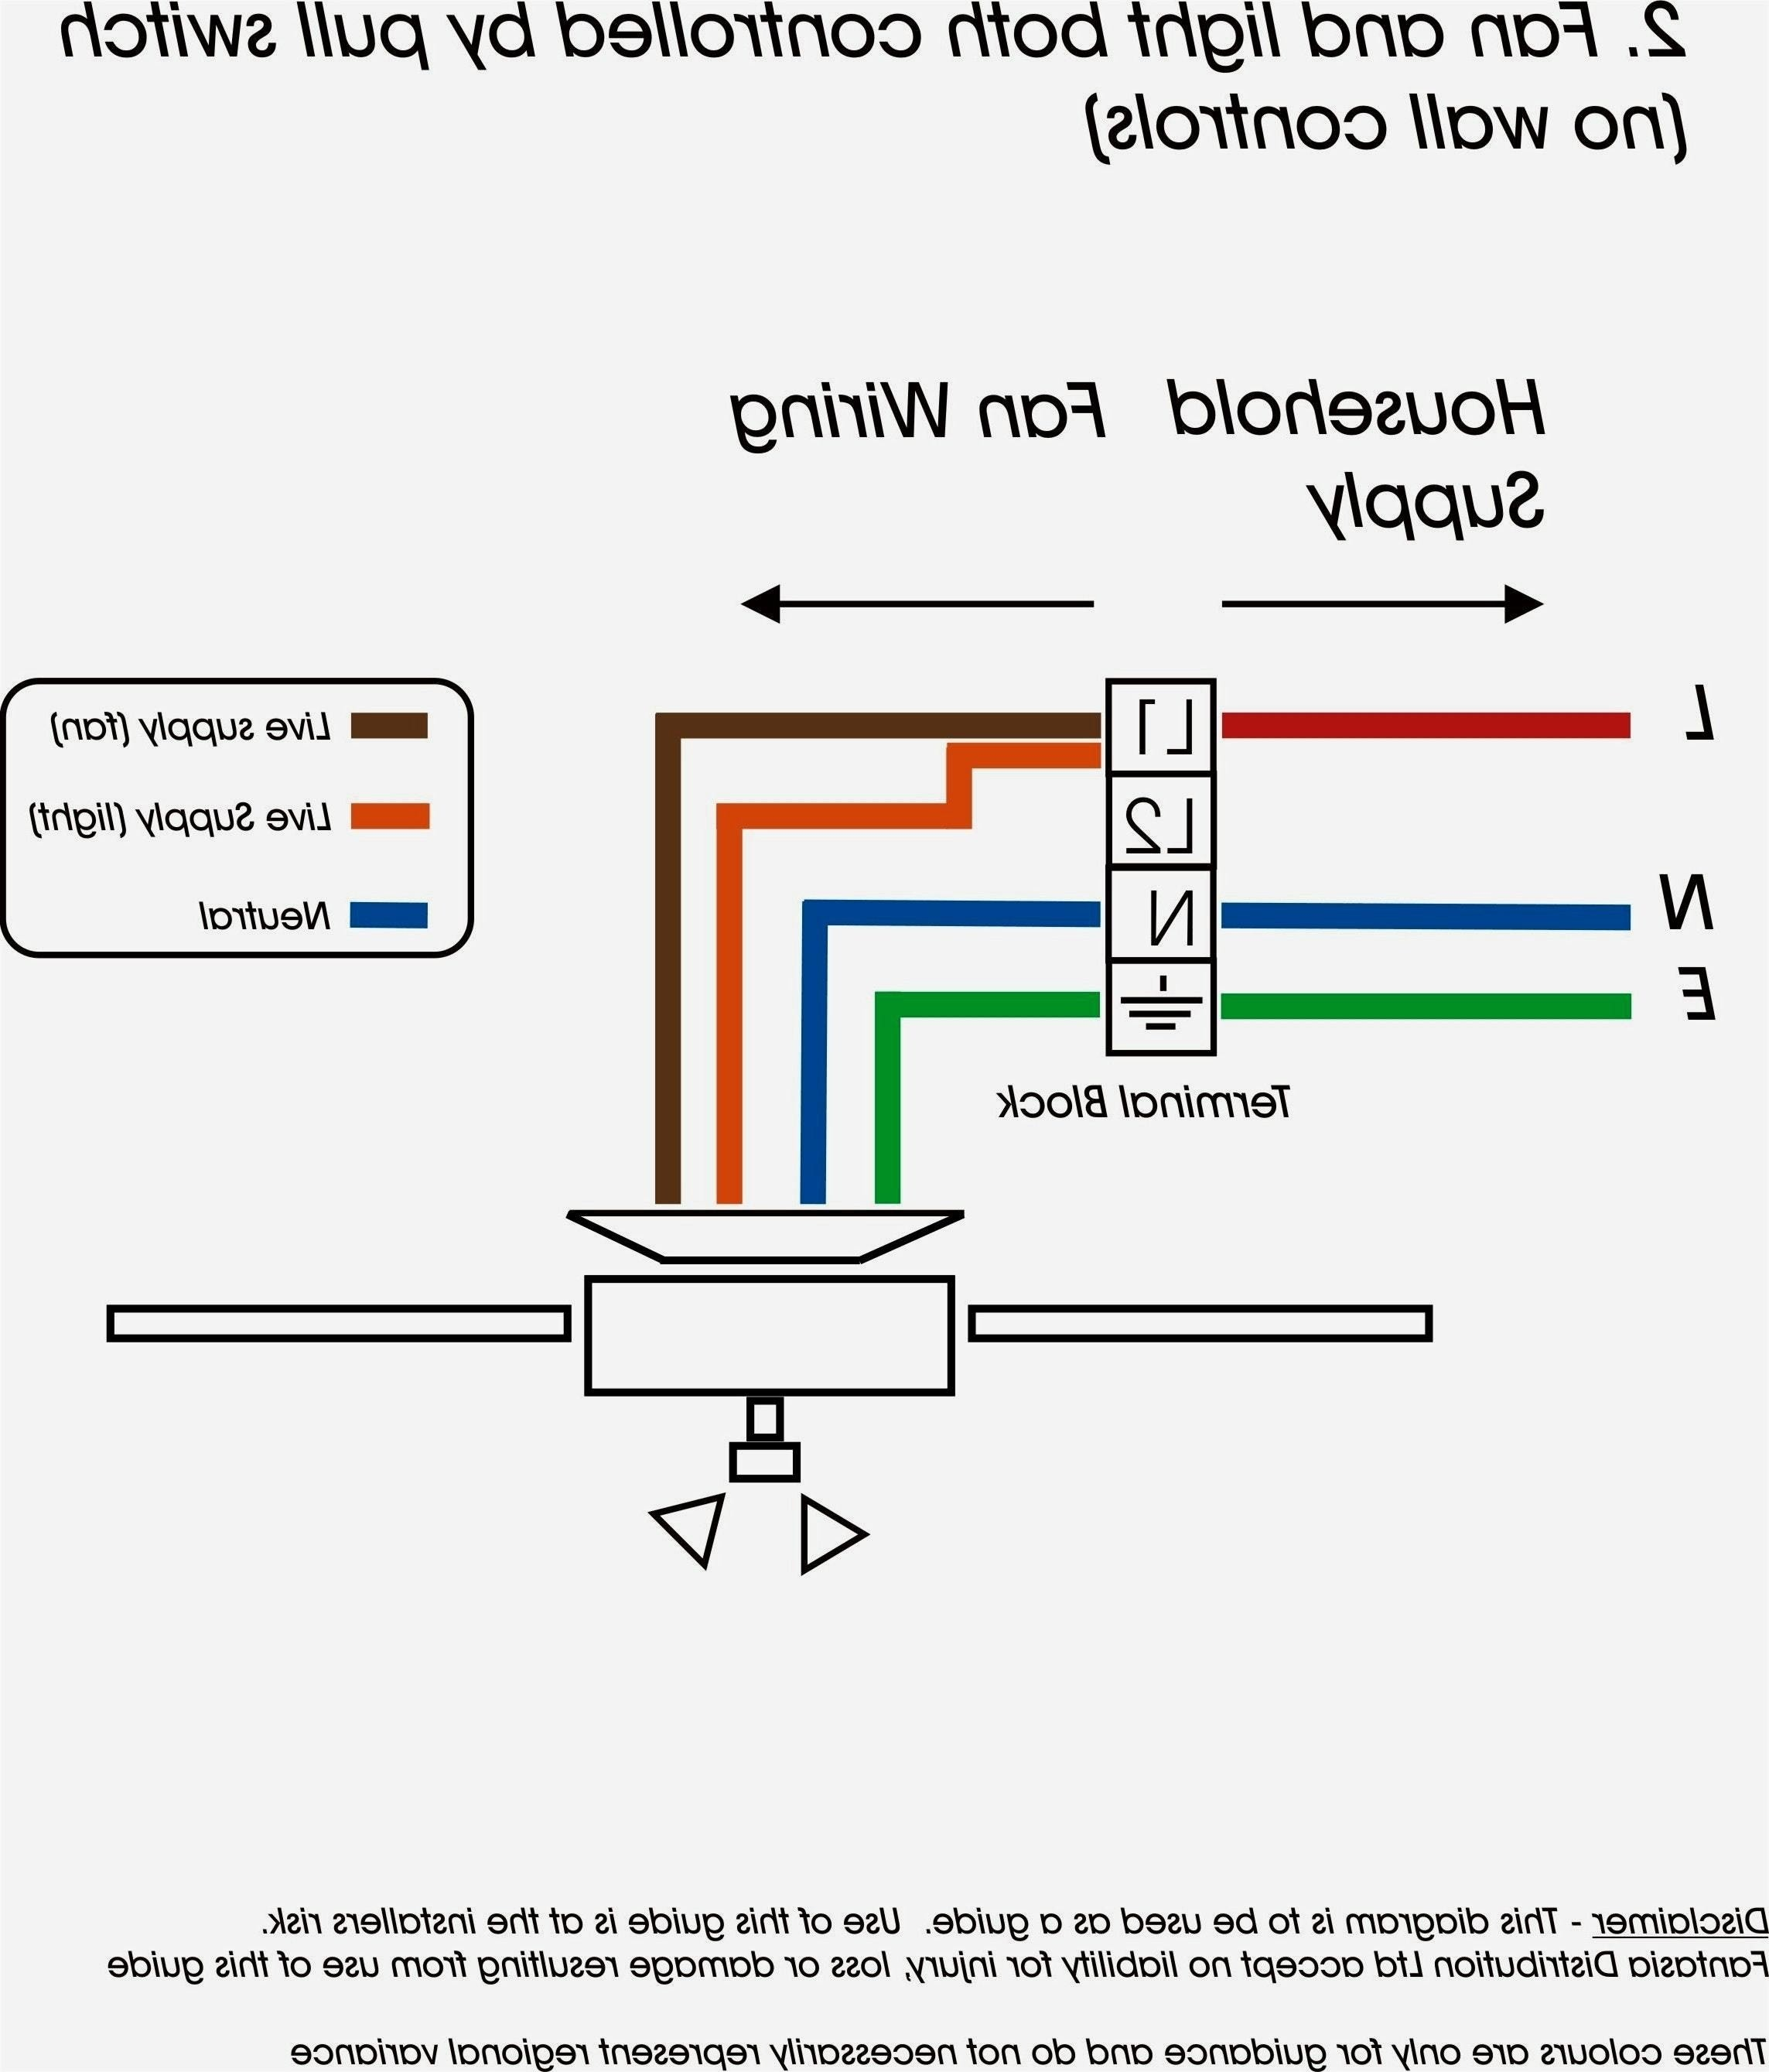 Cargo Trailer Wiring Diagram 4 Wire Electrical Diagram Premium Wiring Diagram Design Of Cargo Trailer Wiring Diagram